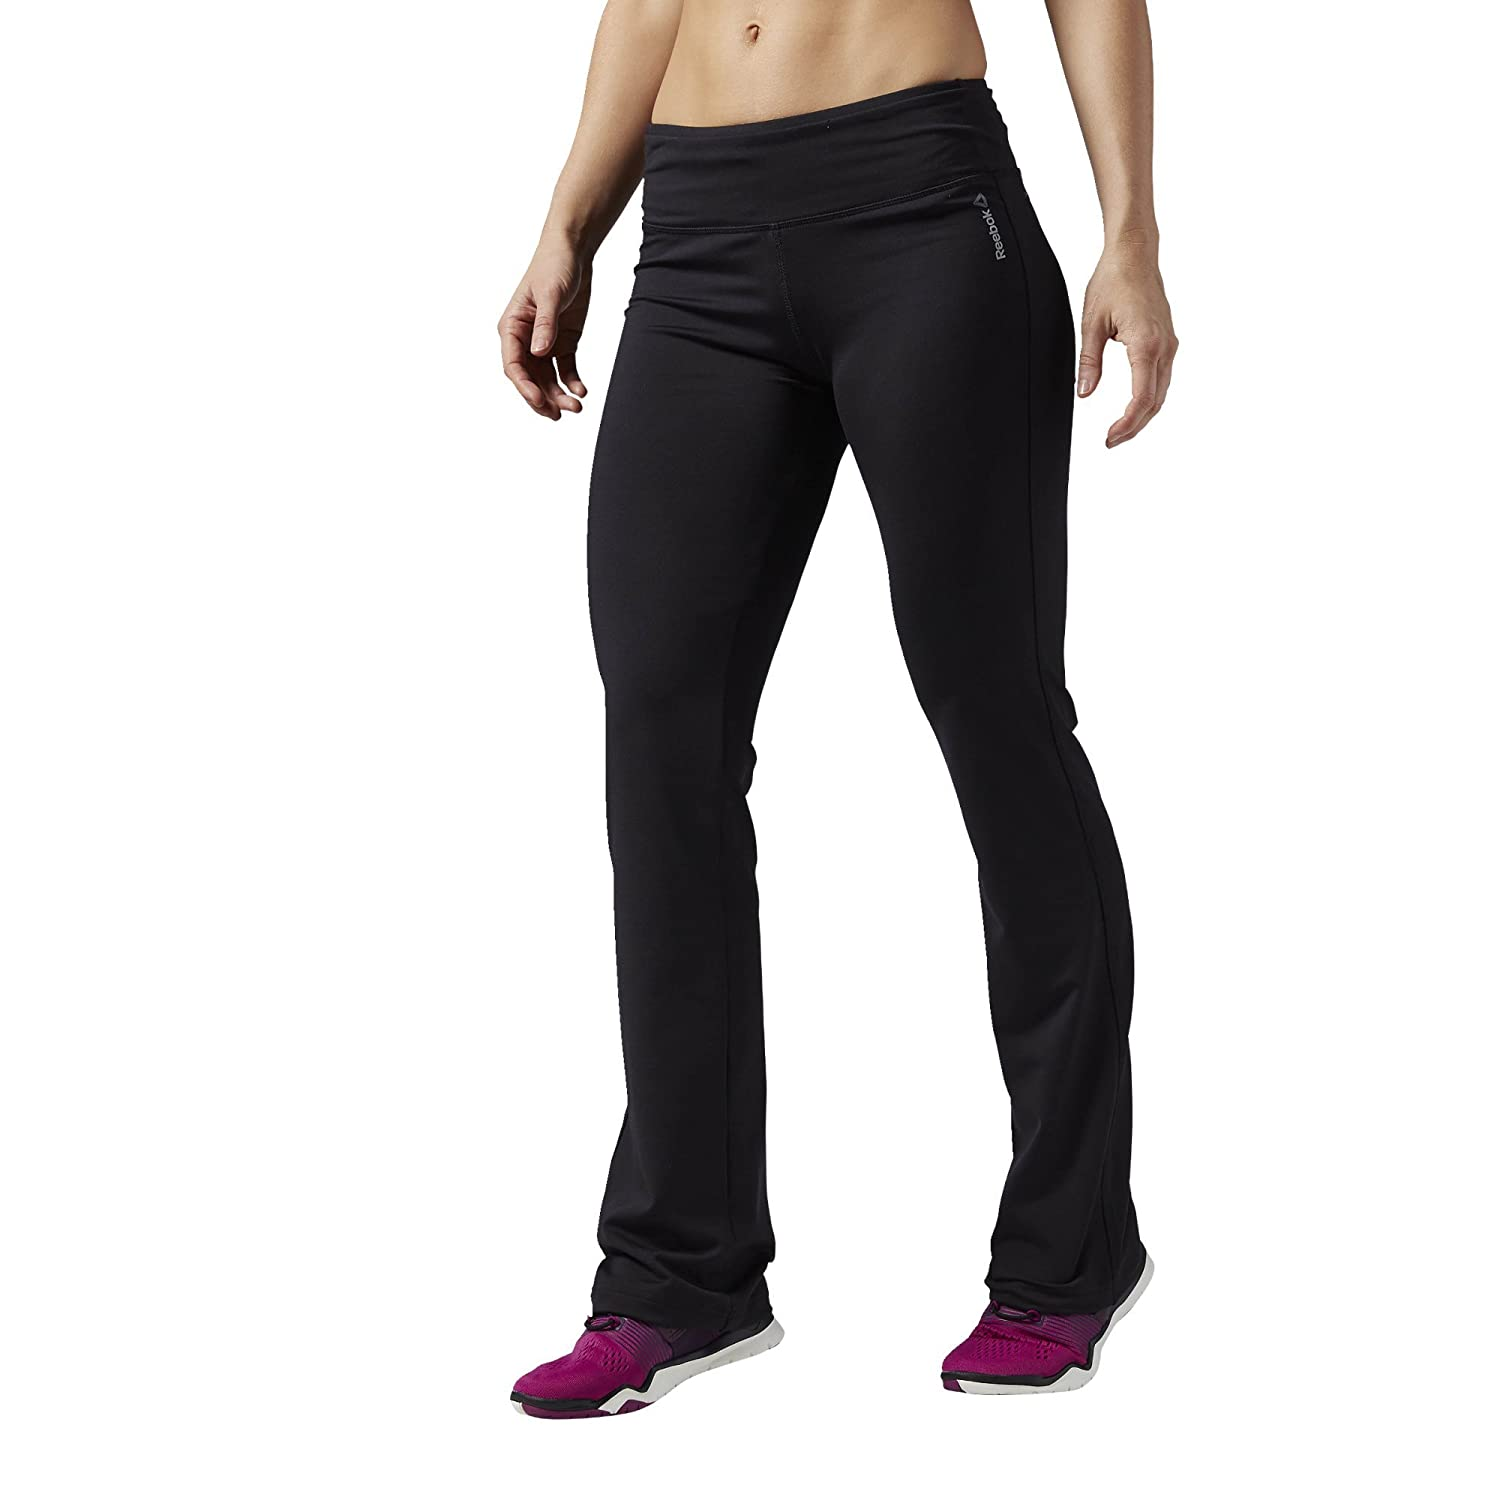 Reebok Women's Work Out Ready Pant Program Fitted Bootcut